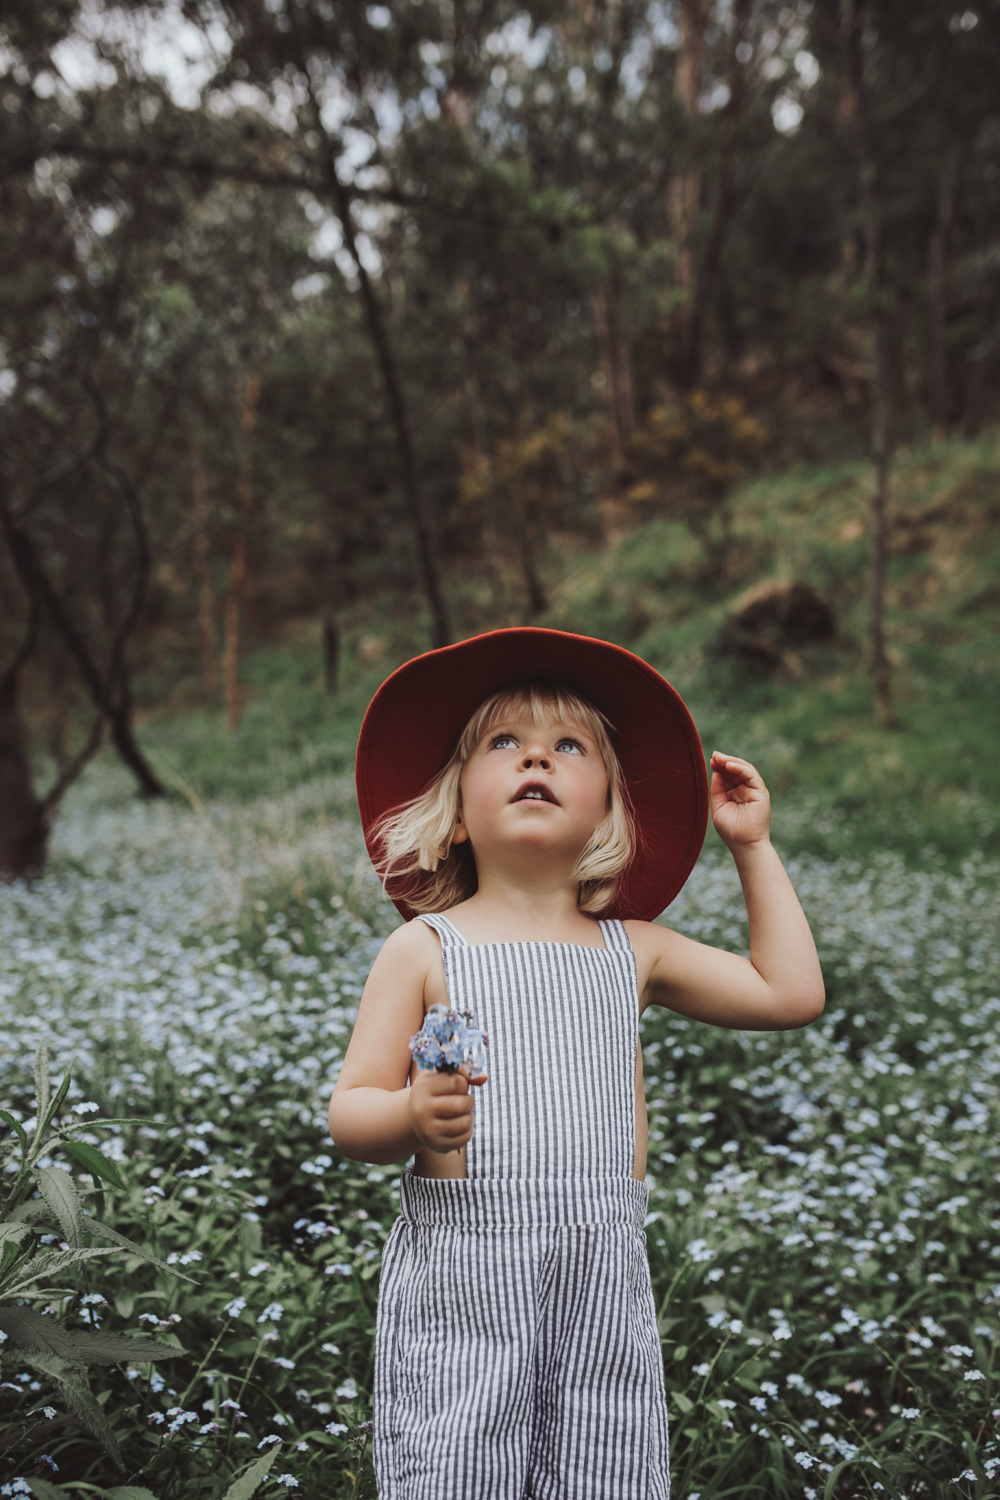 Young girl looks up in field of flowers with felt hat and posy o